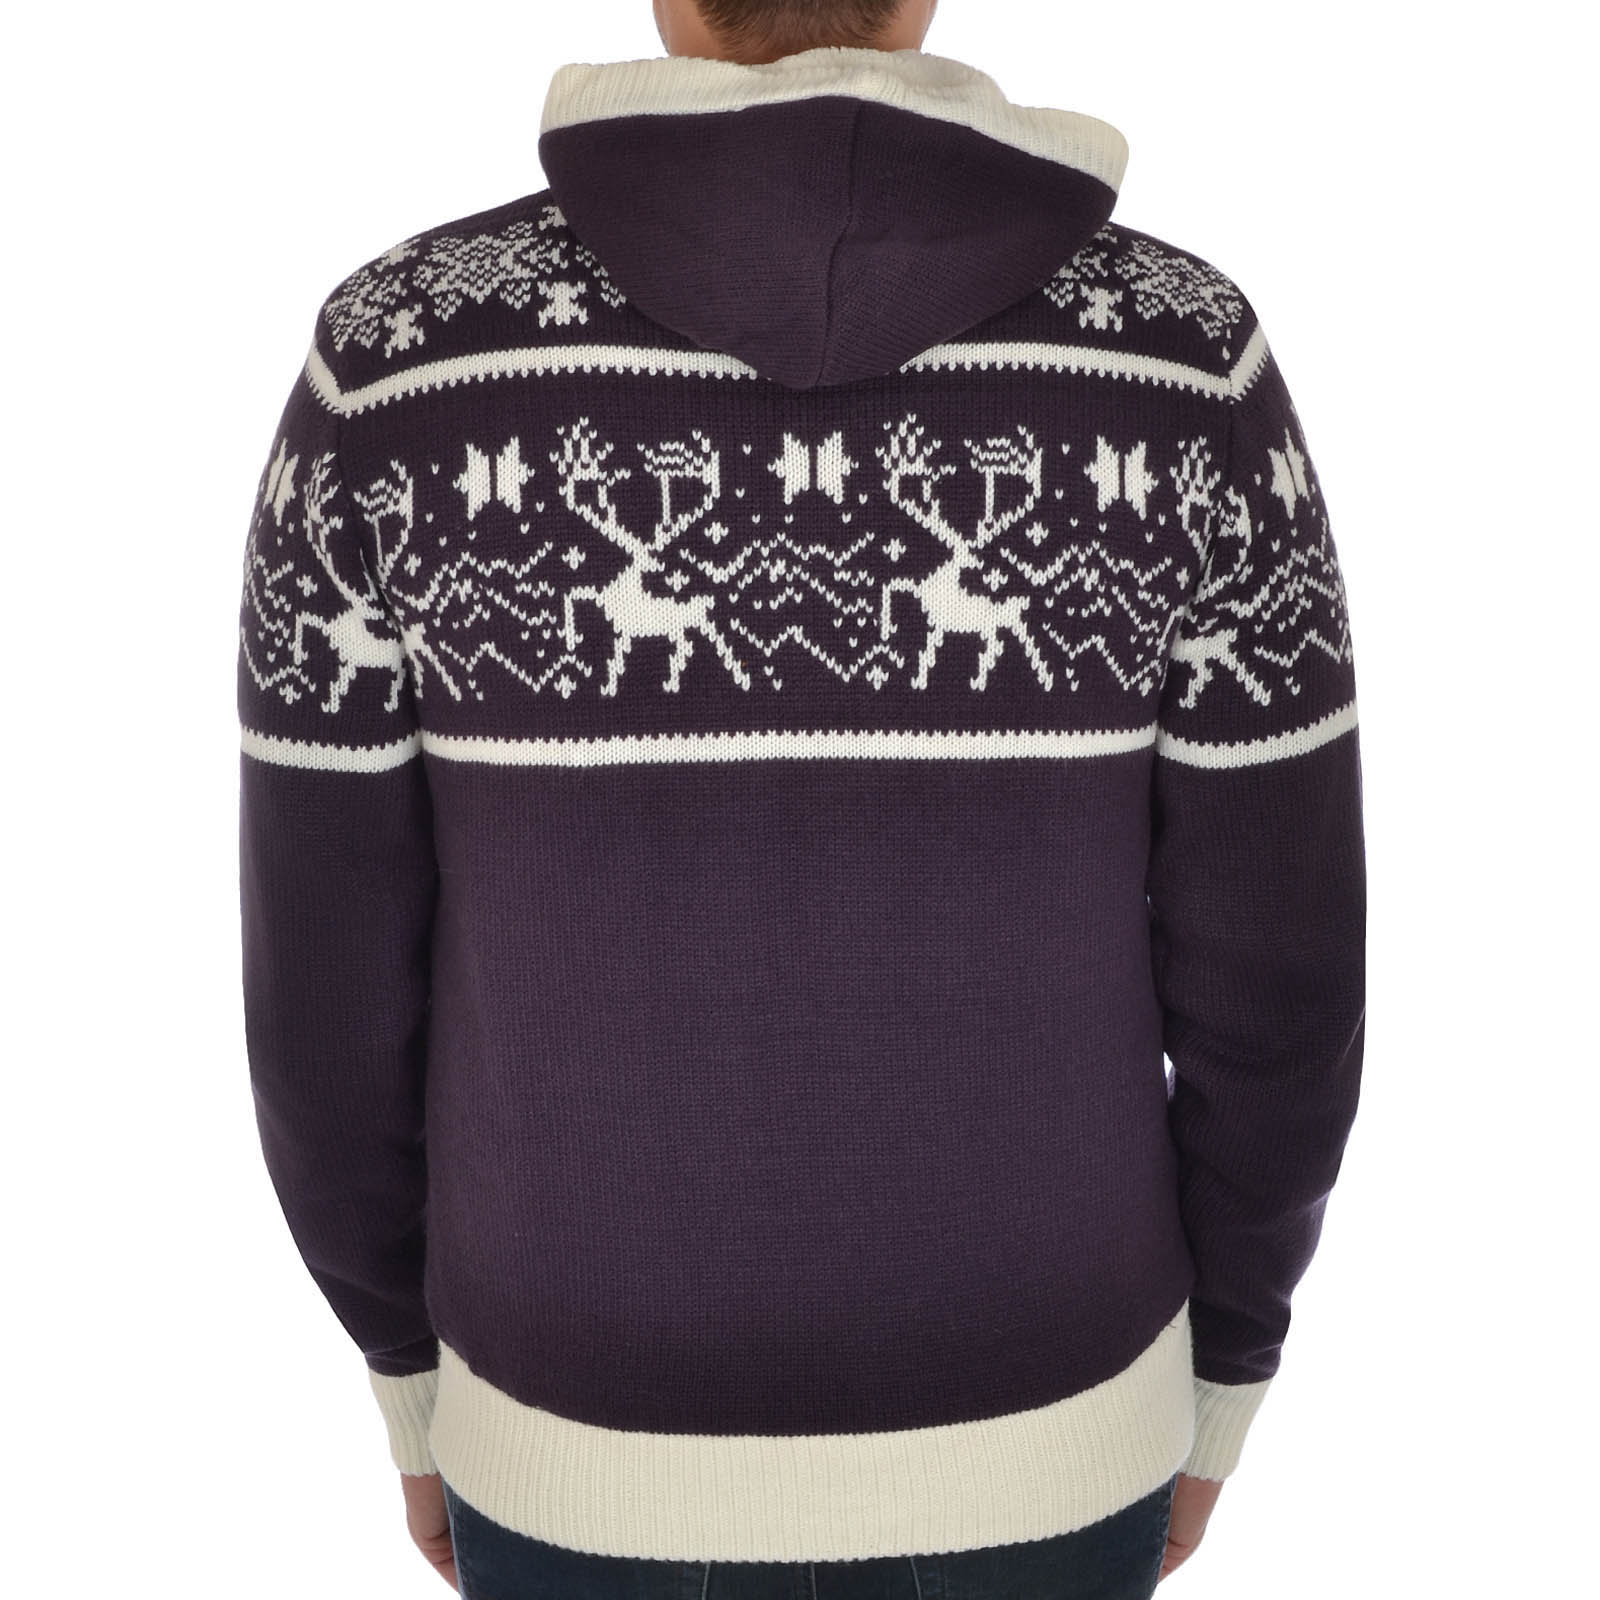 Knitting Patterns Mens Xmas Jumpers : Soul Star Mens Knitted Zip Up Hooded Cardigan Christmas Jumper Sweater Top ...